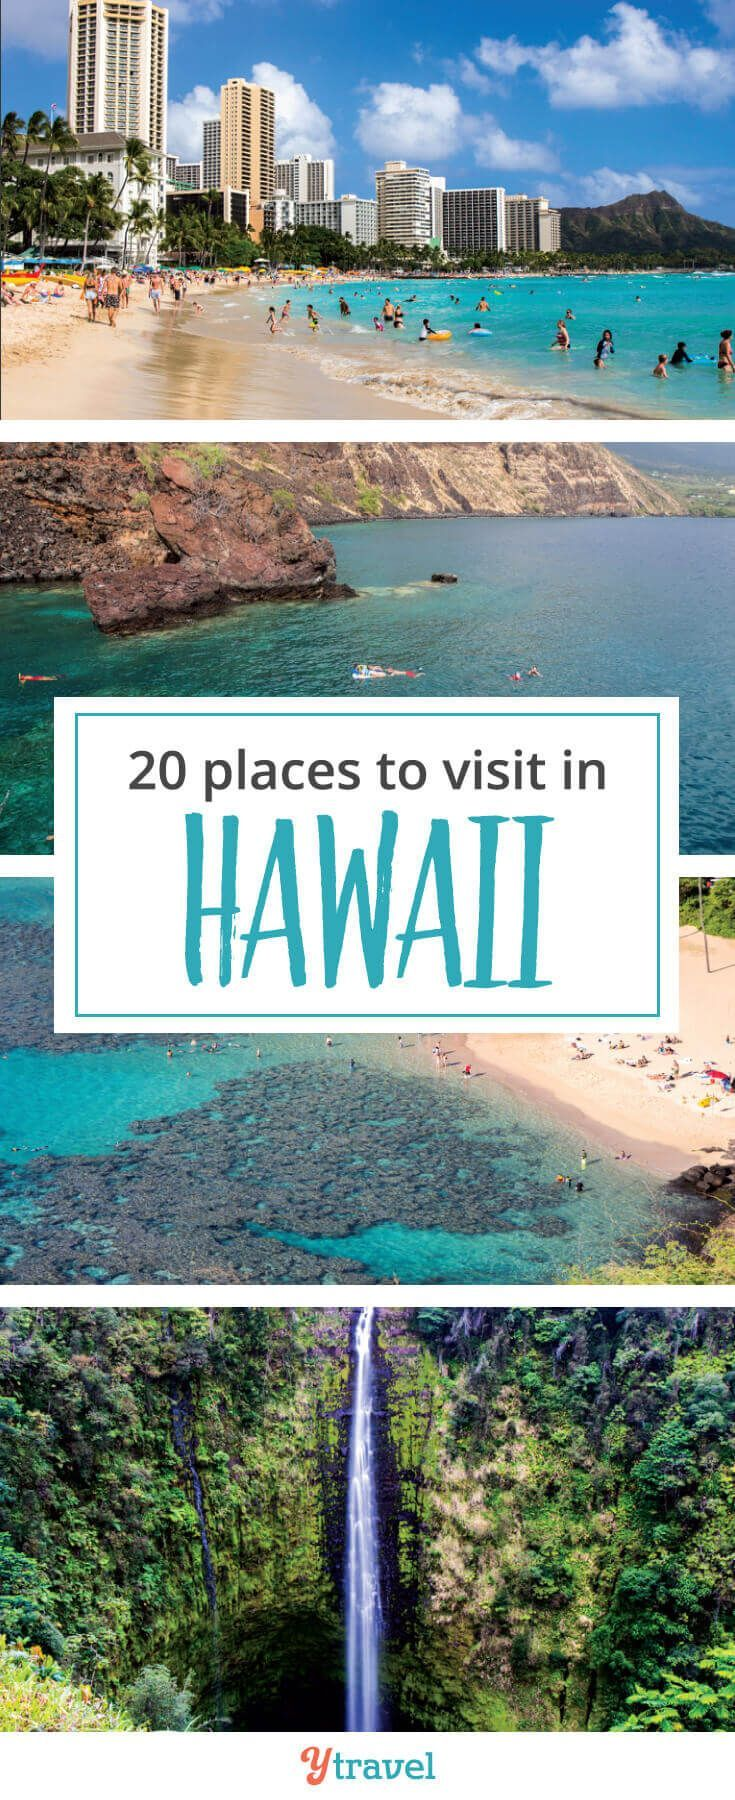 Places to visit in Hawaii. Going to Hawaii is always a good idea, especially if you want to escape the cold of winter in North America. Check out these 20 places to visit in Hawaii for your next vacation.